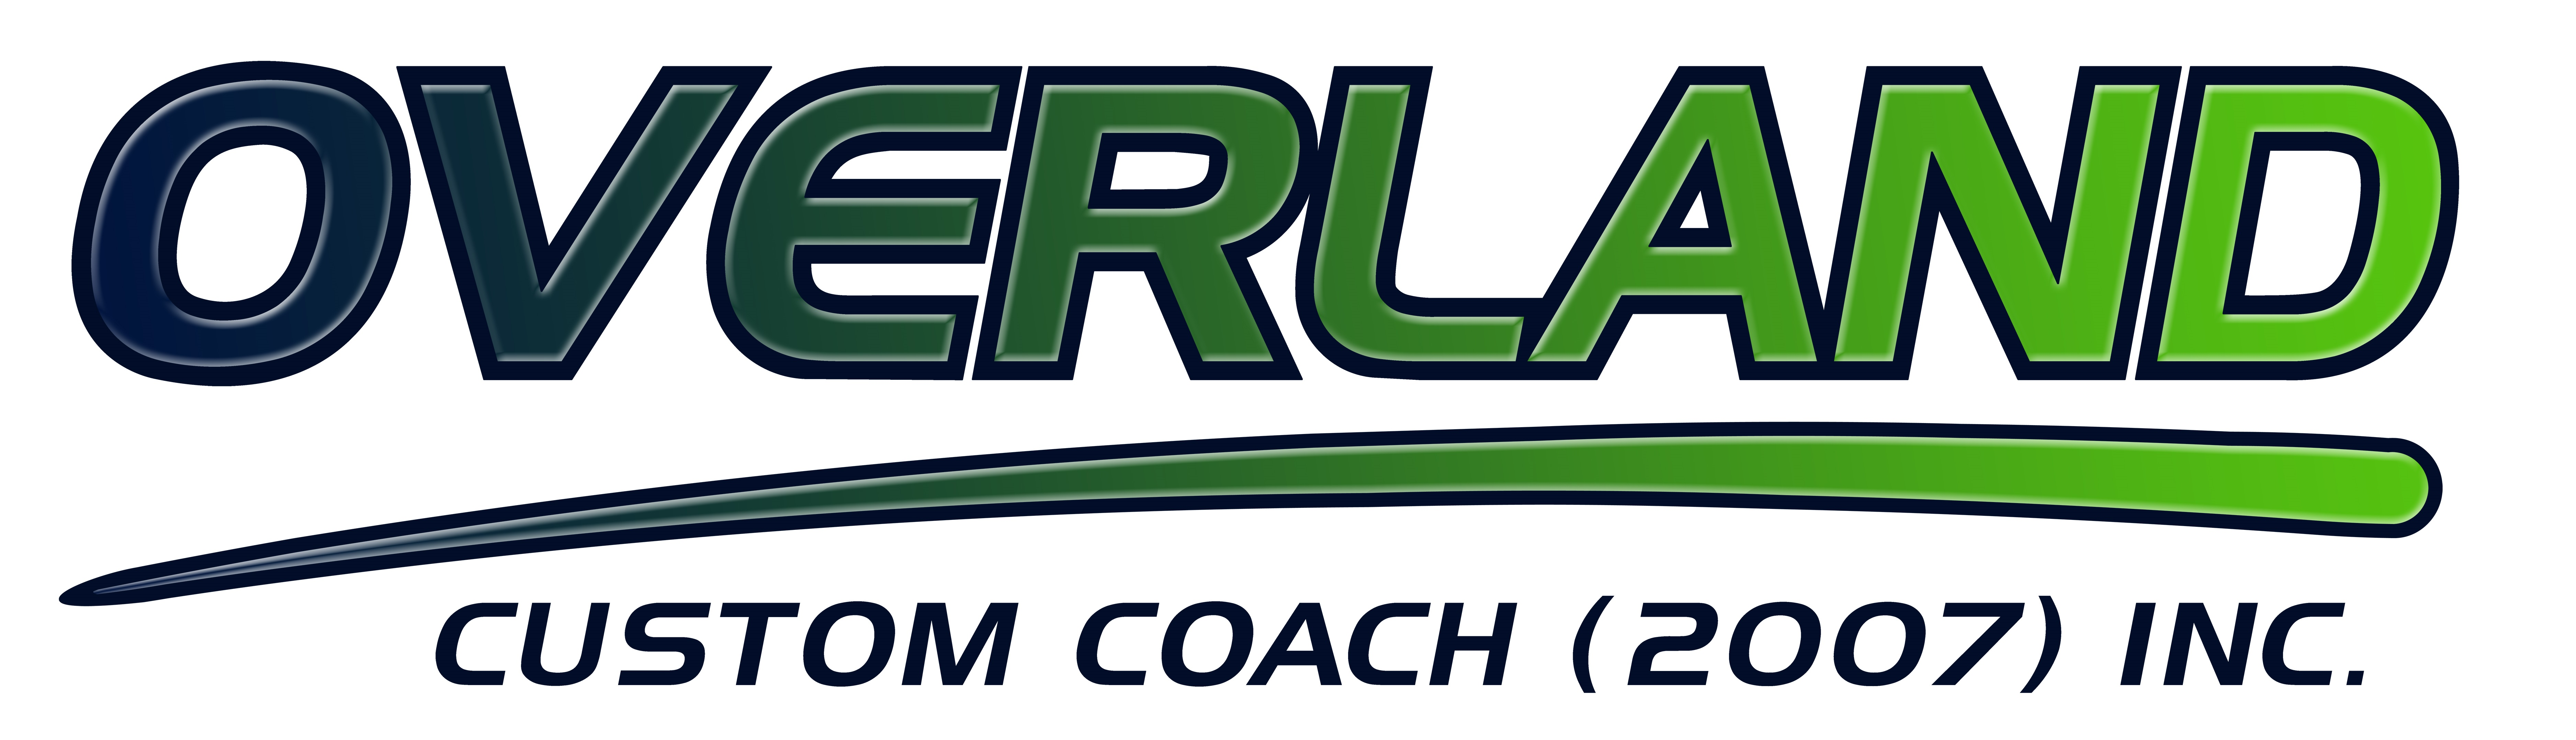 OVERLAND LOGOhigh res